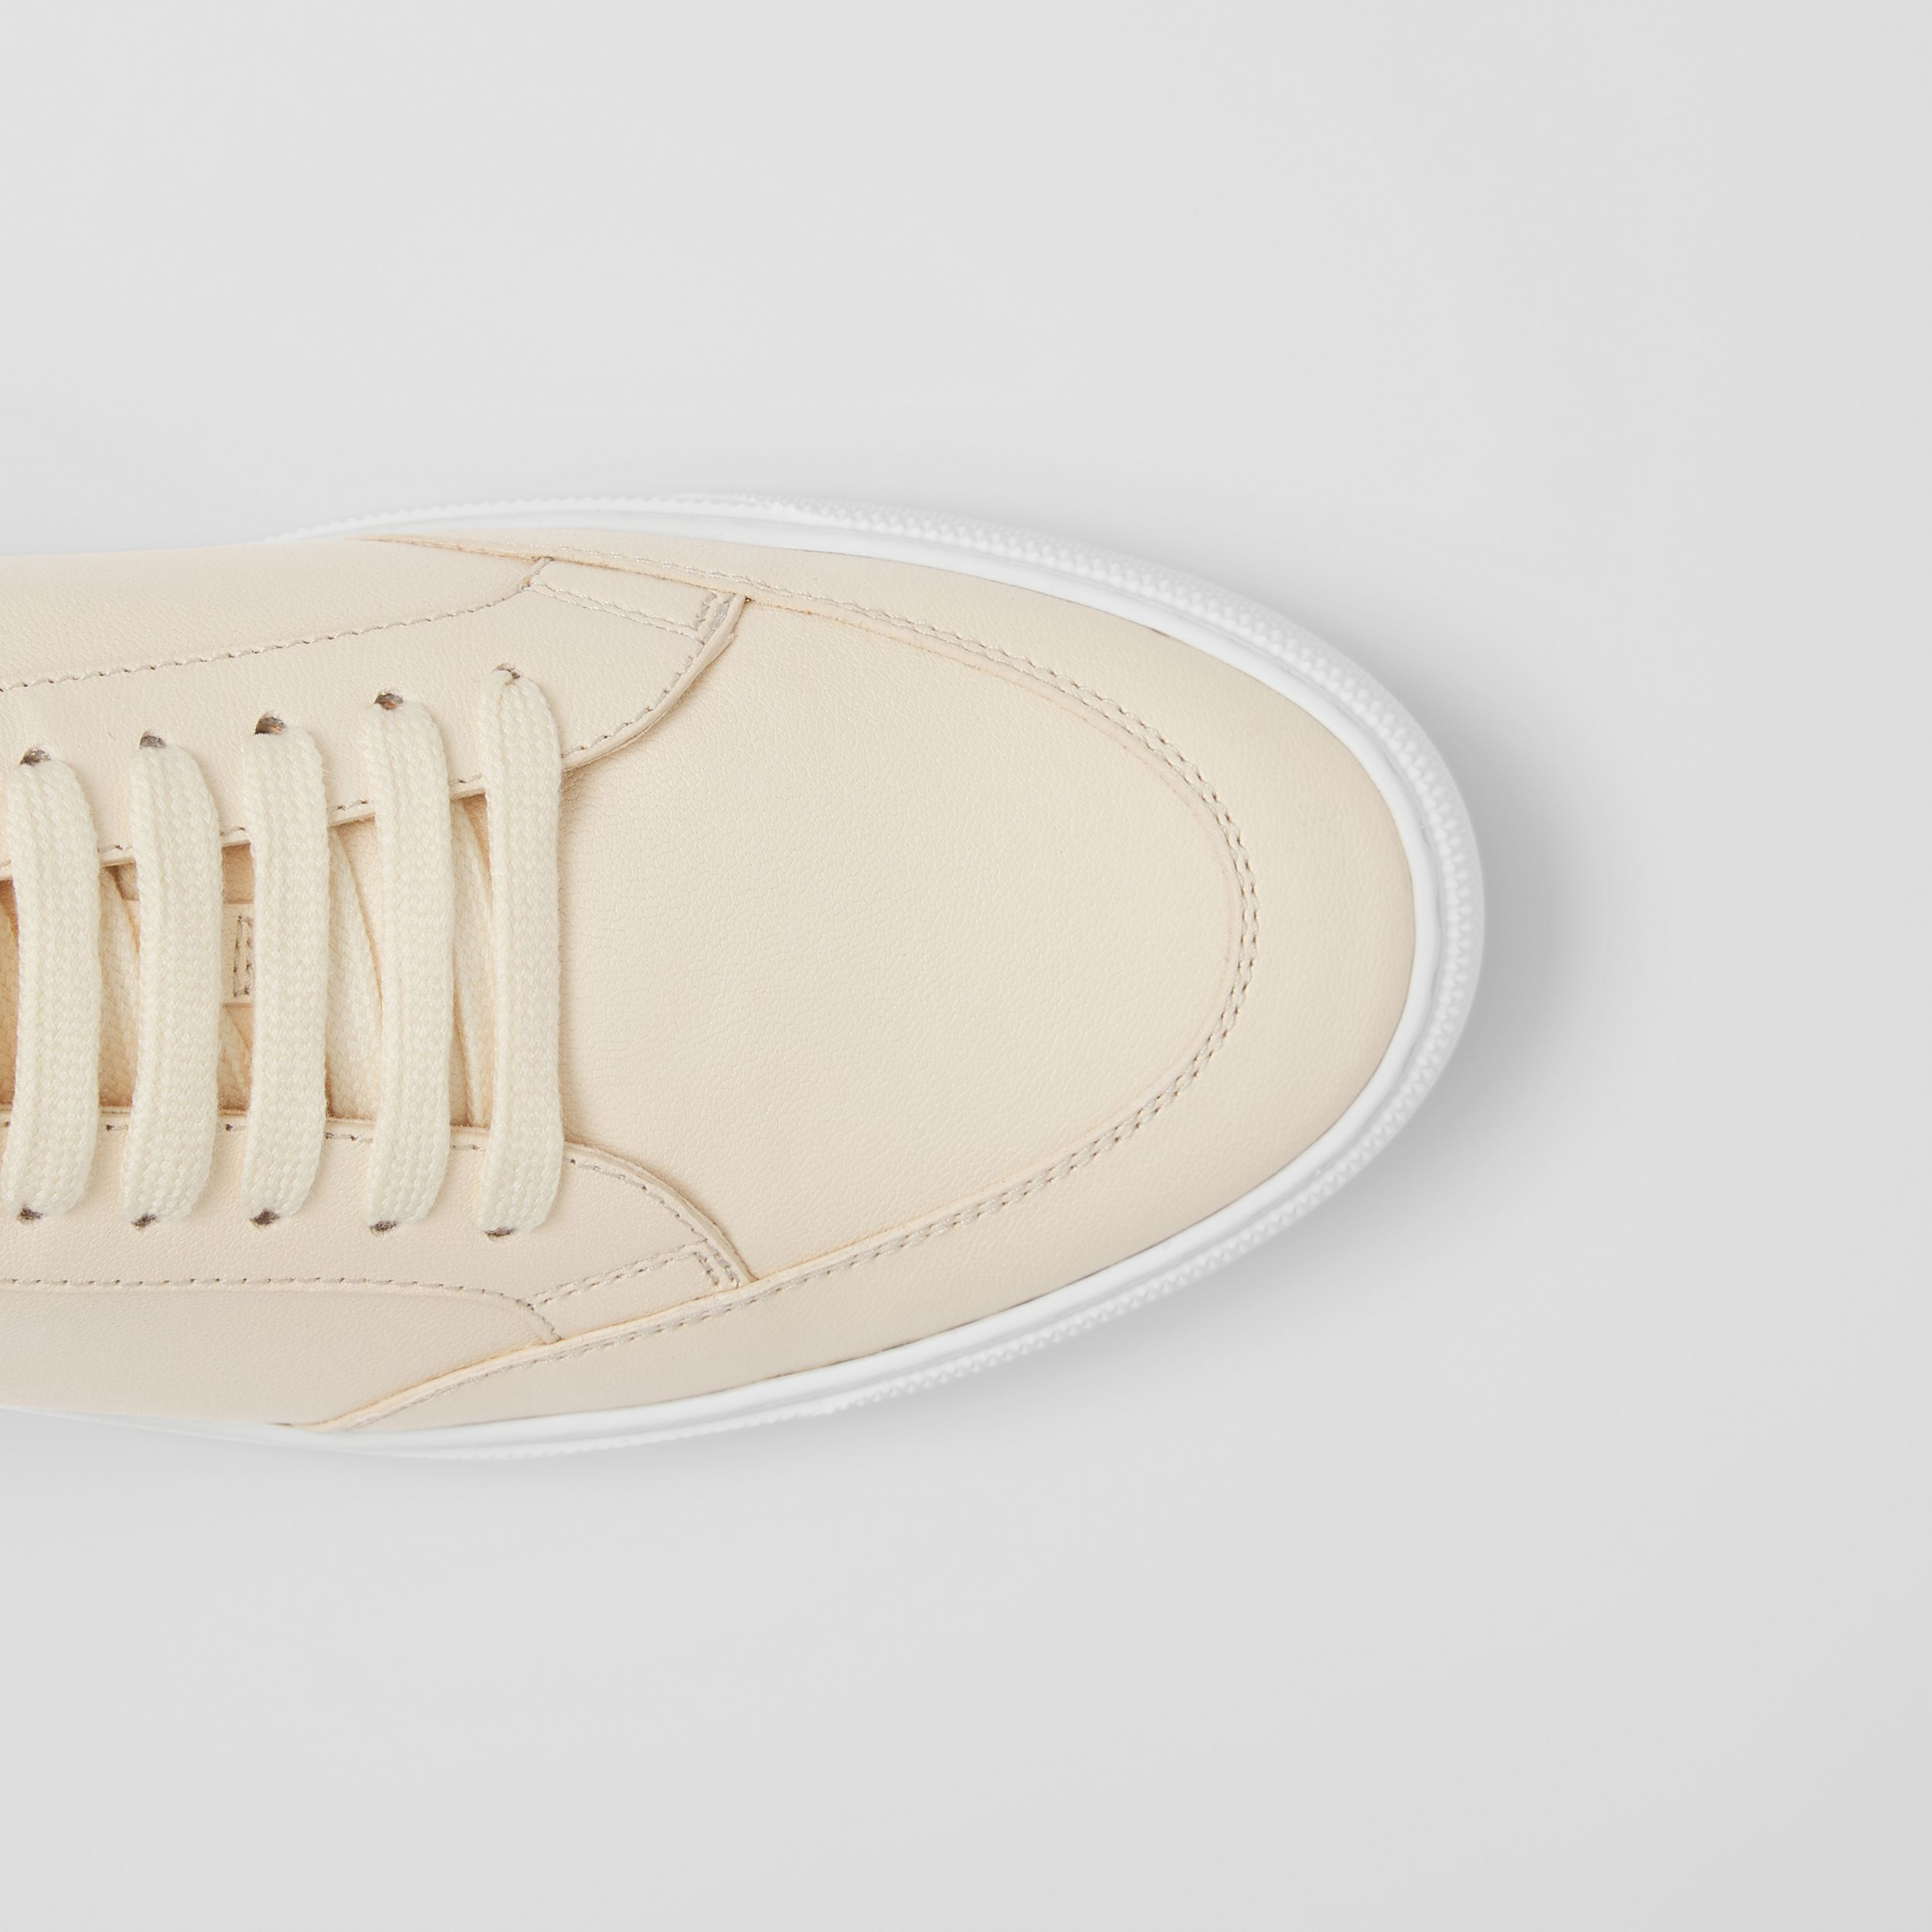 Logo Detail Lambskin Sneakers in Pale Biscuit - Women | Burberry Canada - 2